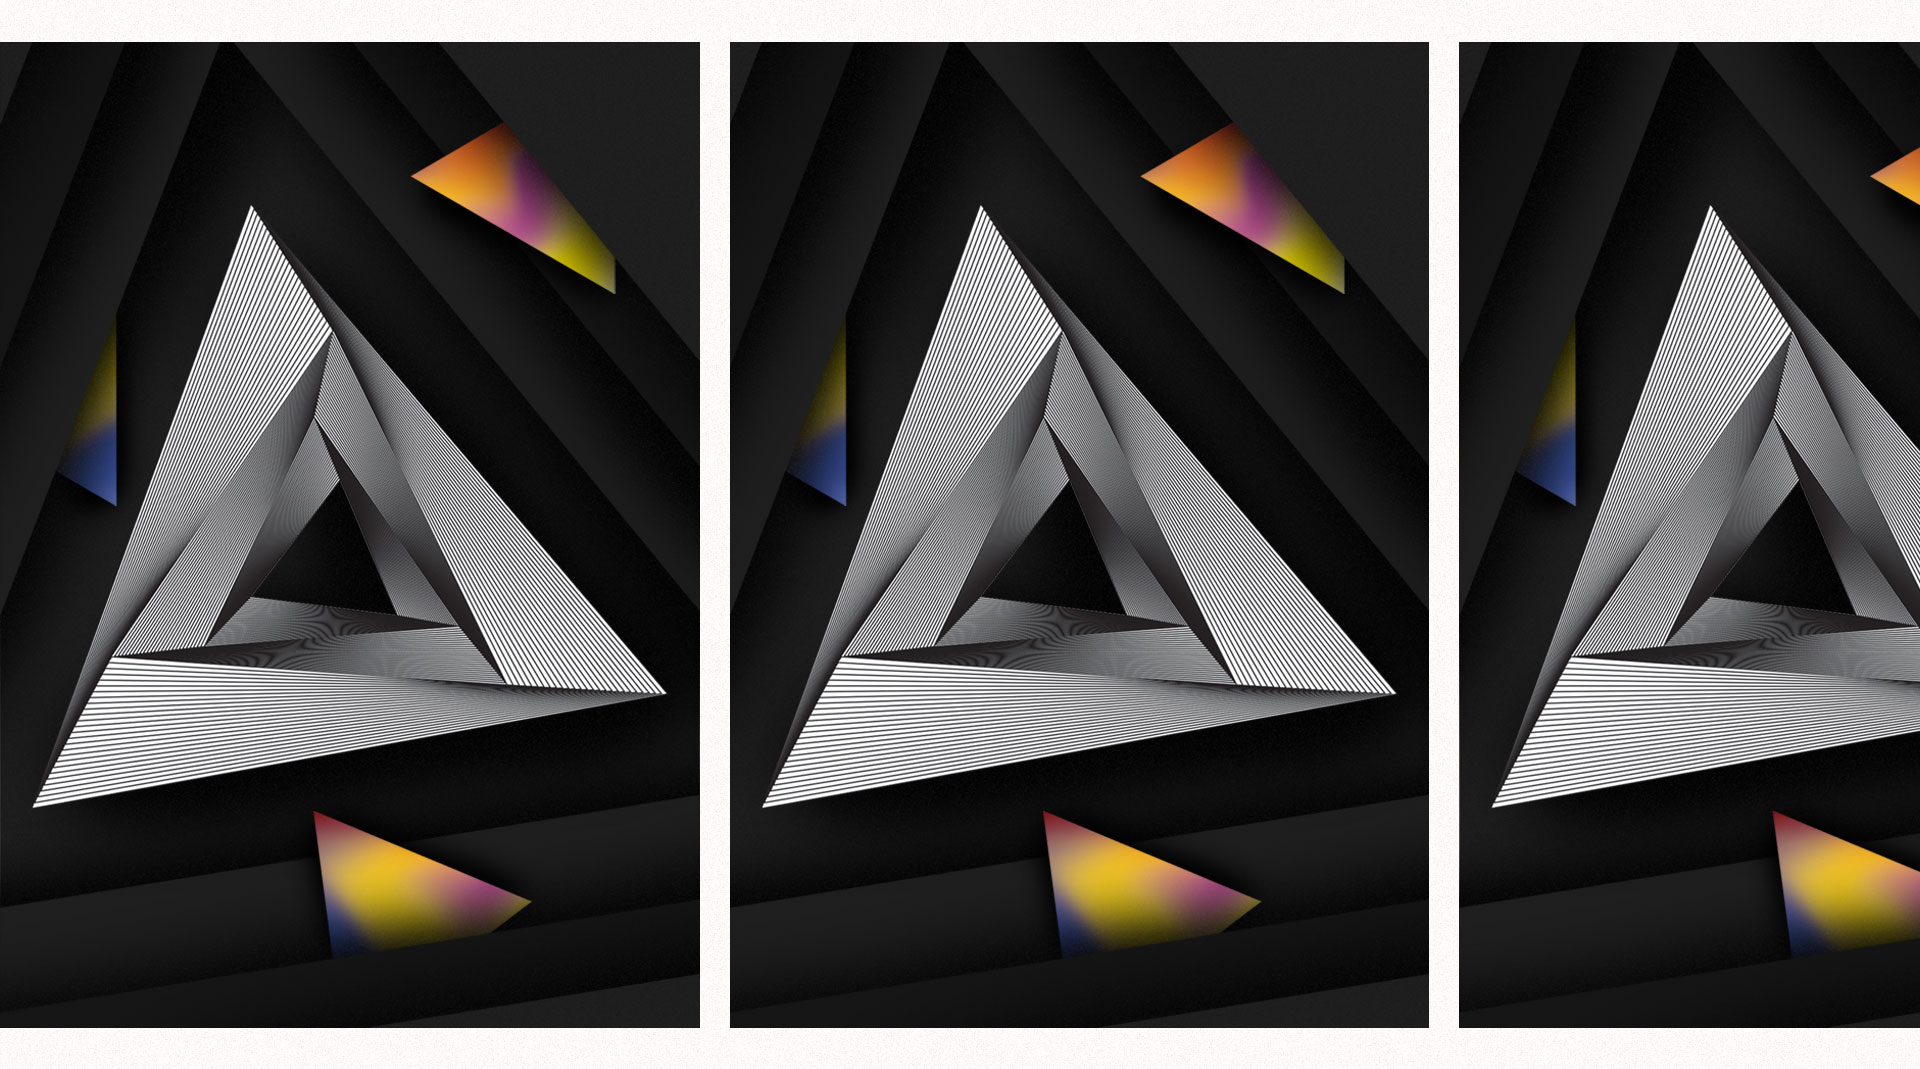 Triangle_Repetition